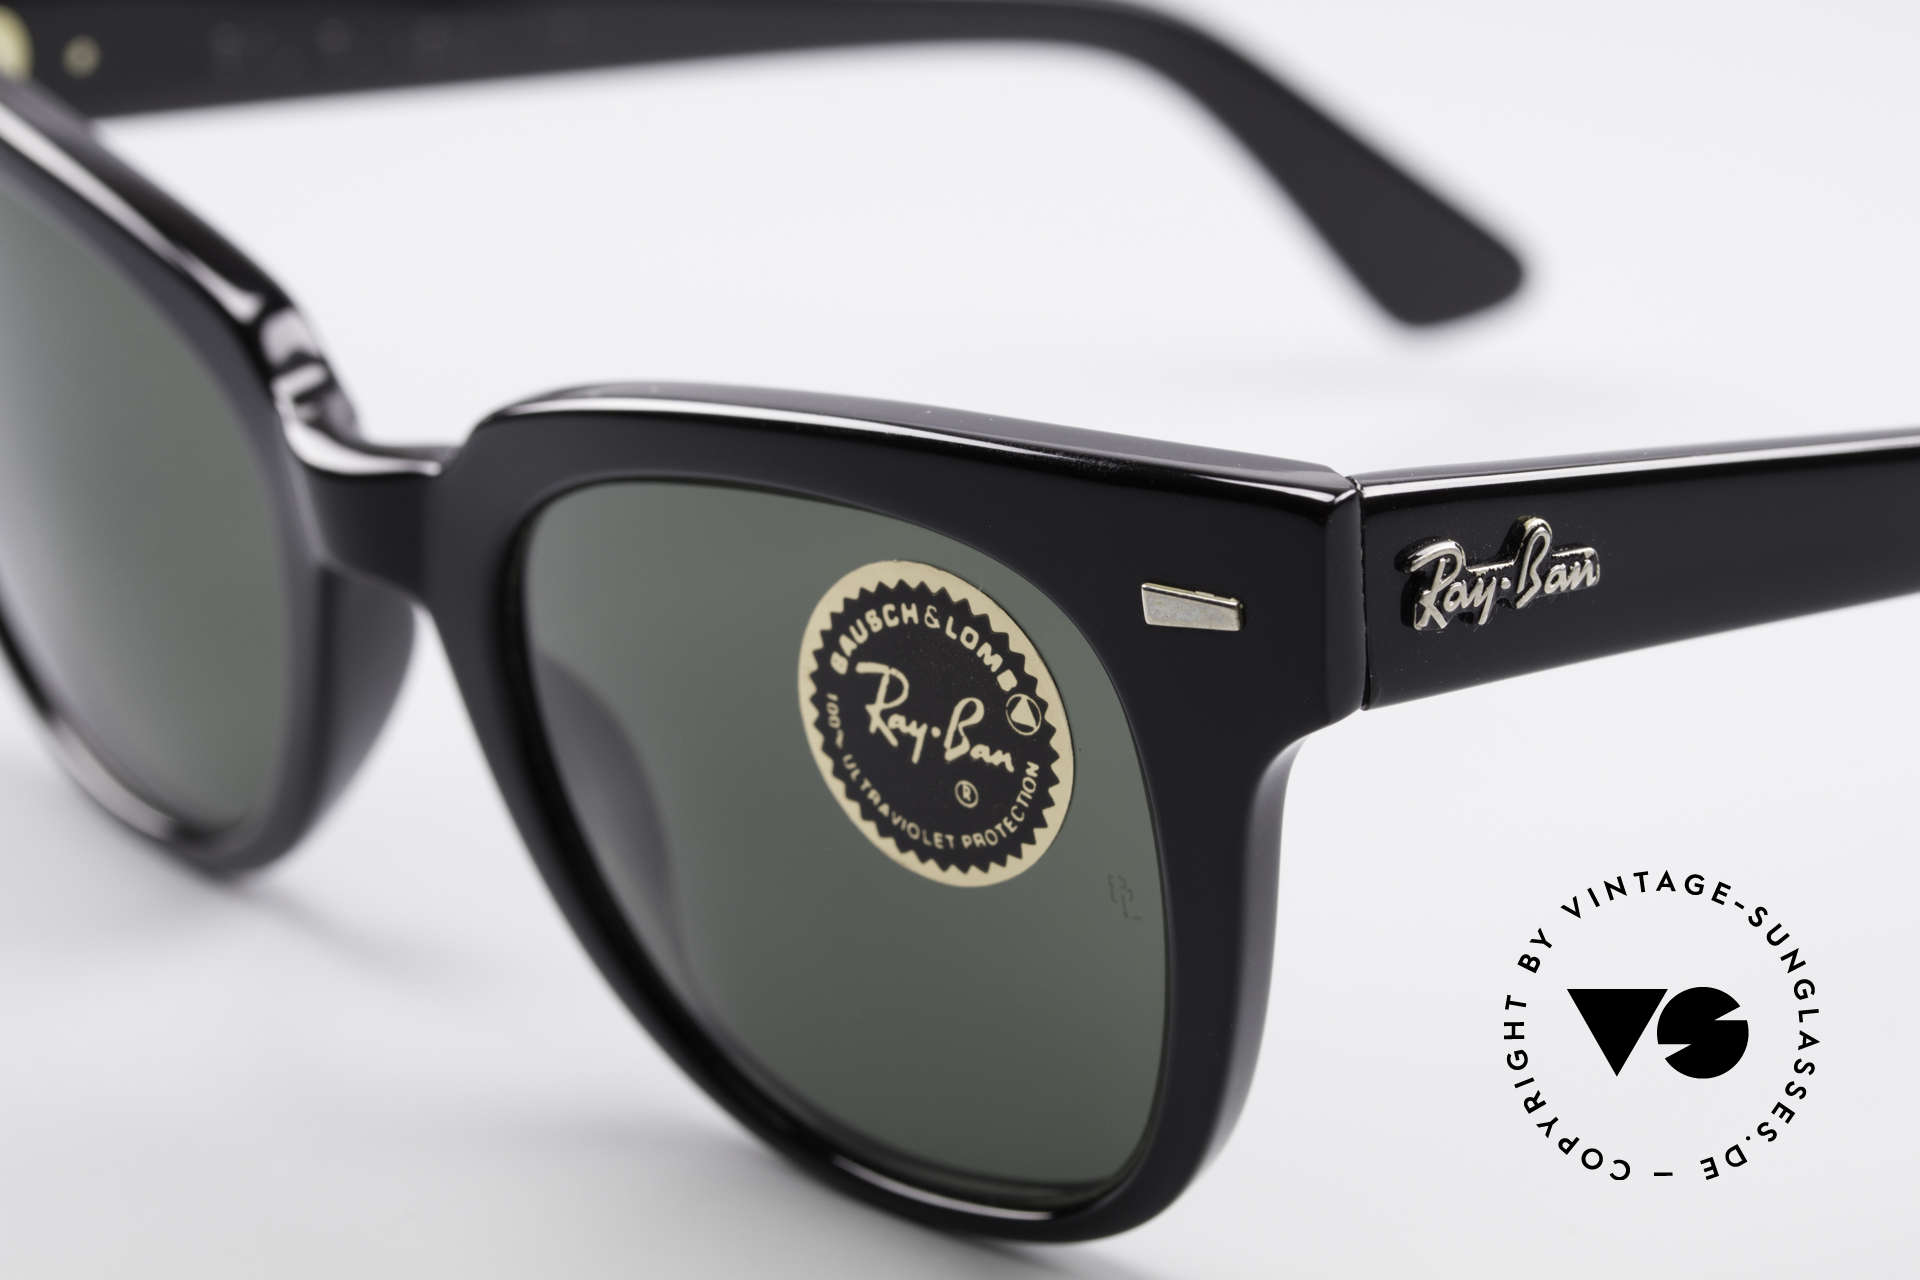 Ray Ban Meteor Old Vintage USA Sunglasses, NO RETRO sunglasses, but an old ORIGINAL!, Made for Men and Women